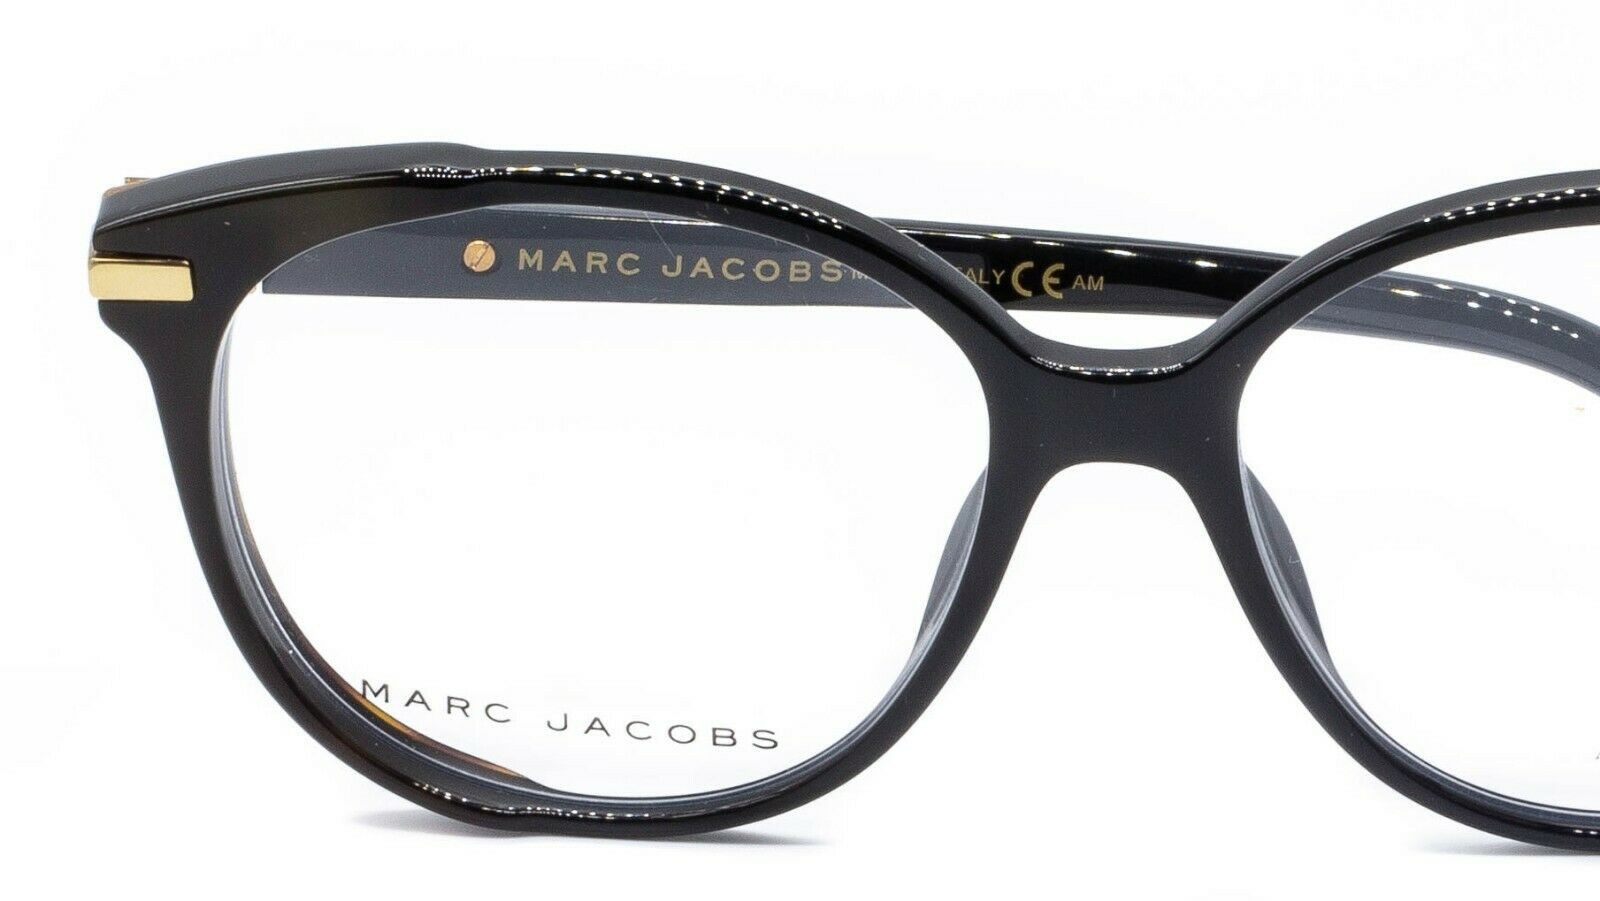 MARC BY MARC JACOBS MJ 631 KV1 54mm Eyewear FRAMES RX Optical Glasses Eyeglasses